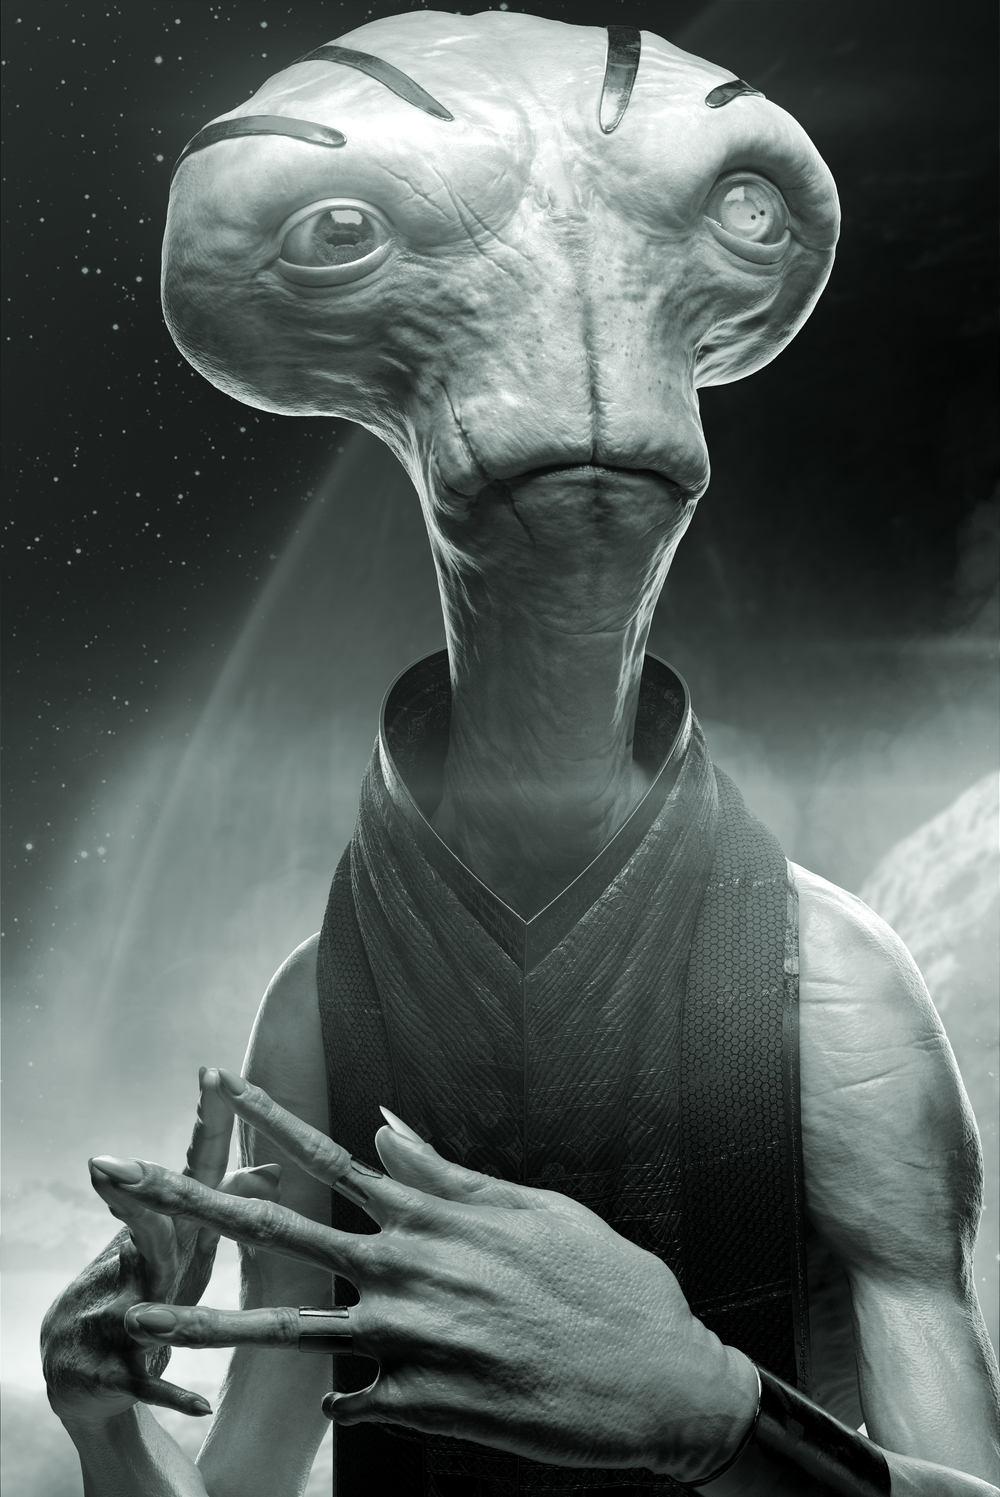 AlienCreature_BW_FINAL.jpg